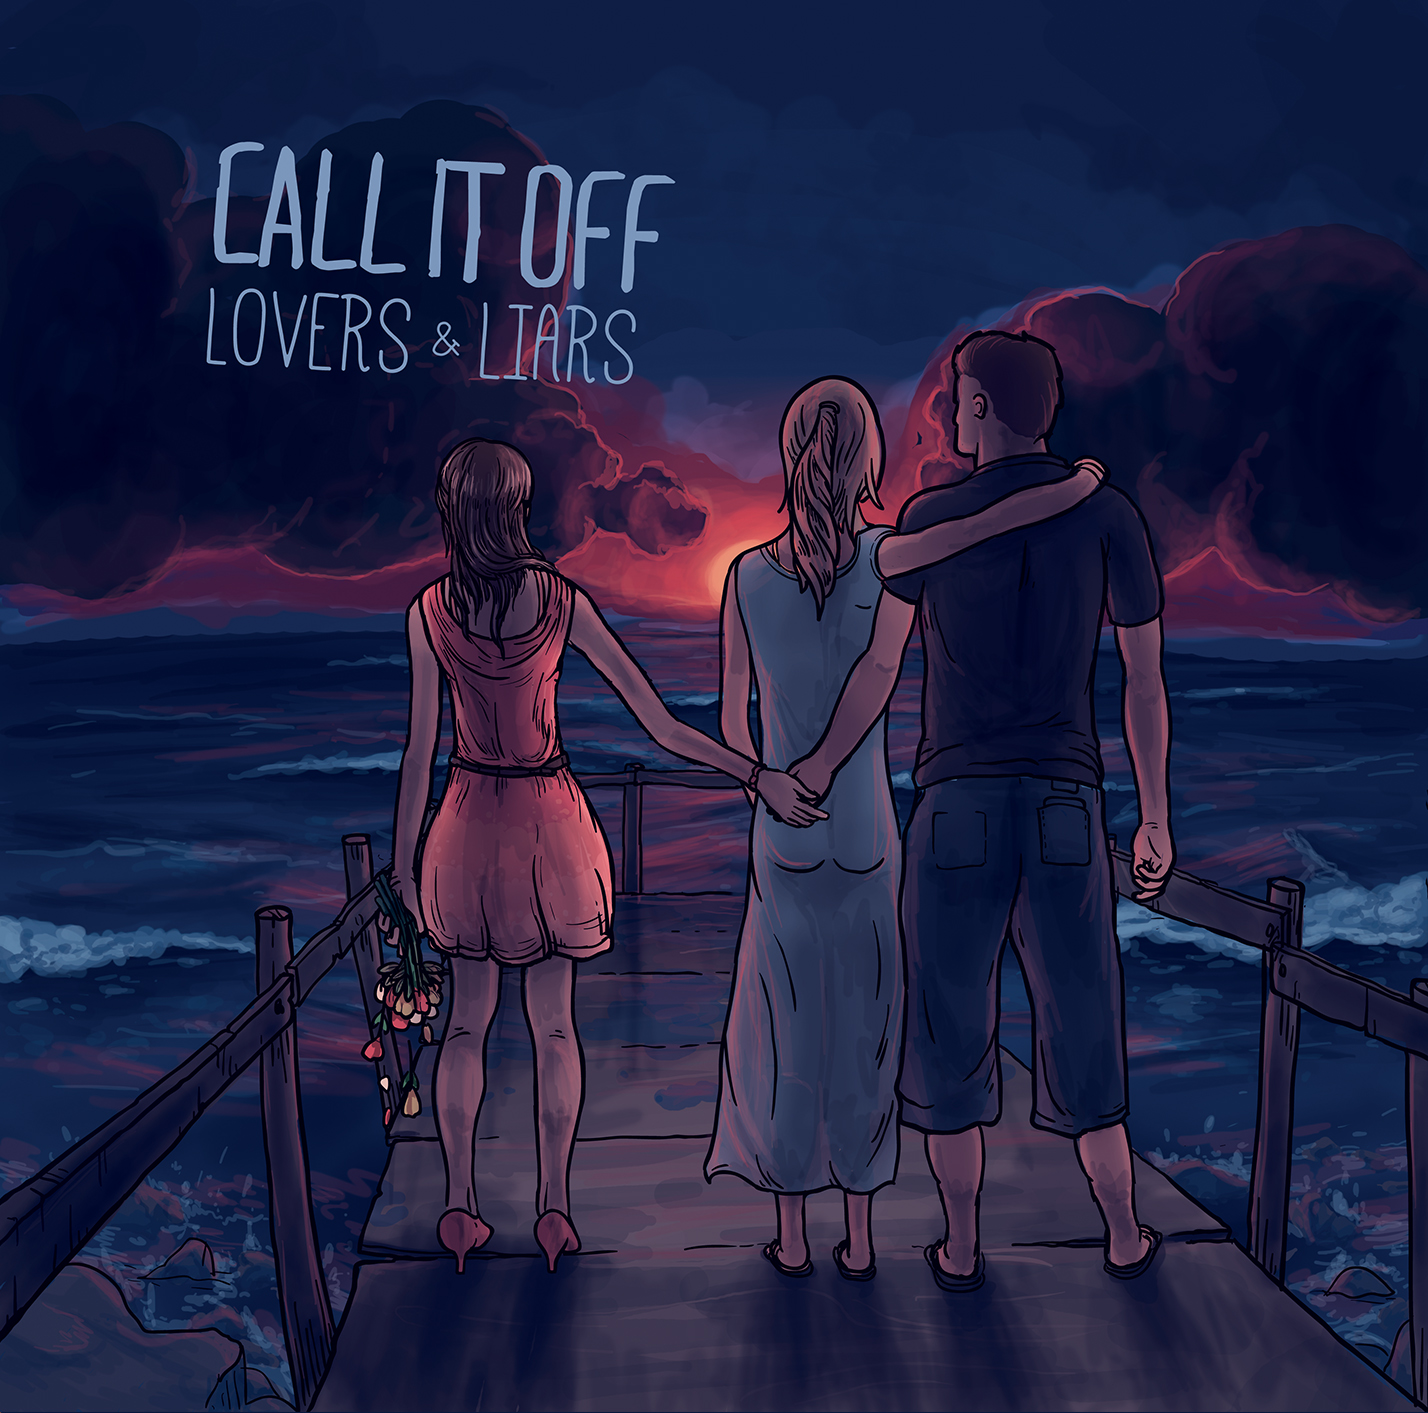 Call It Off | Lovers & Liars (album review) ★★★★☆